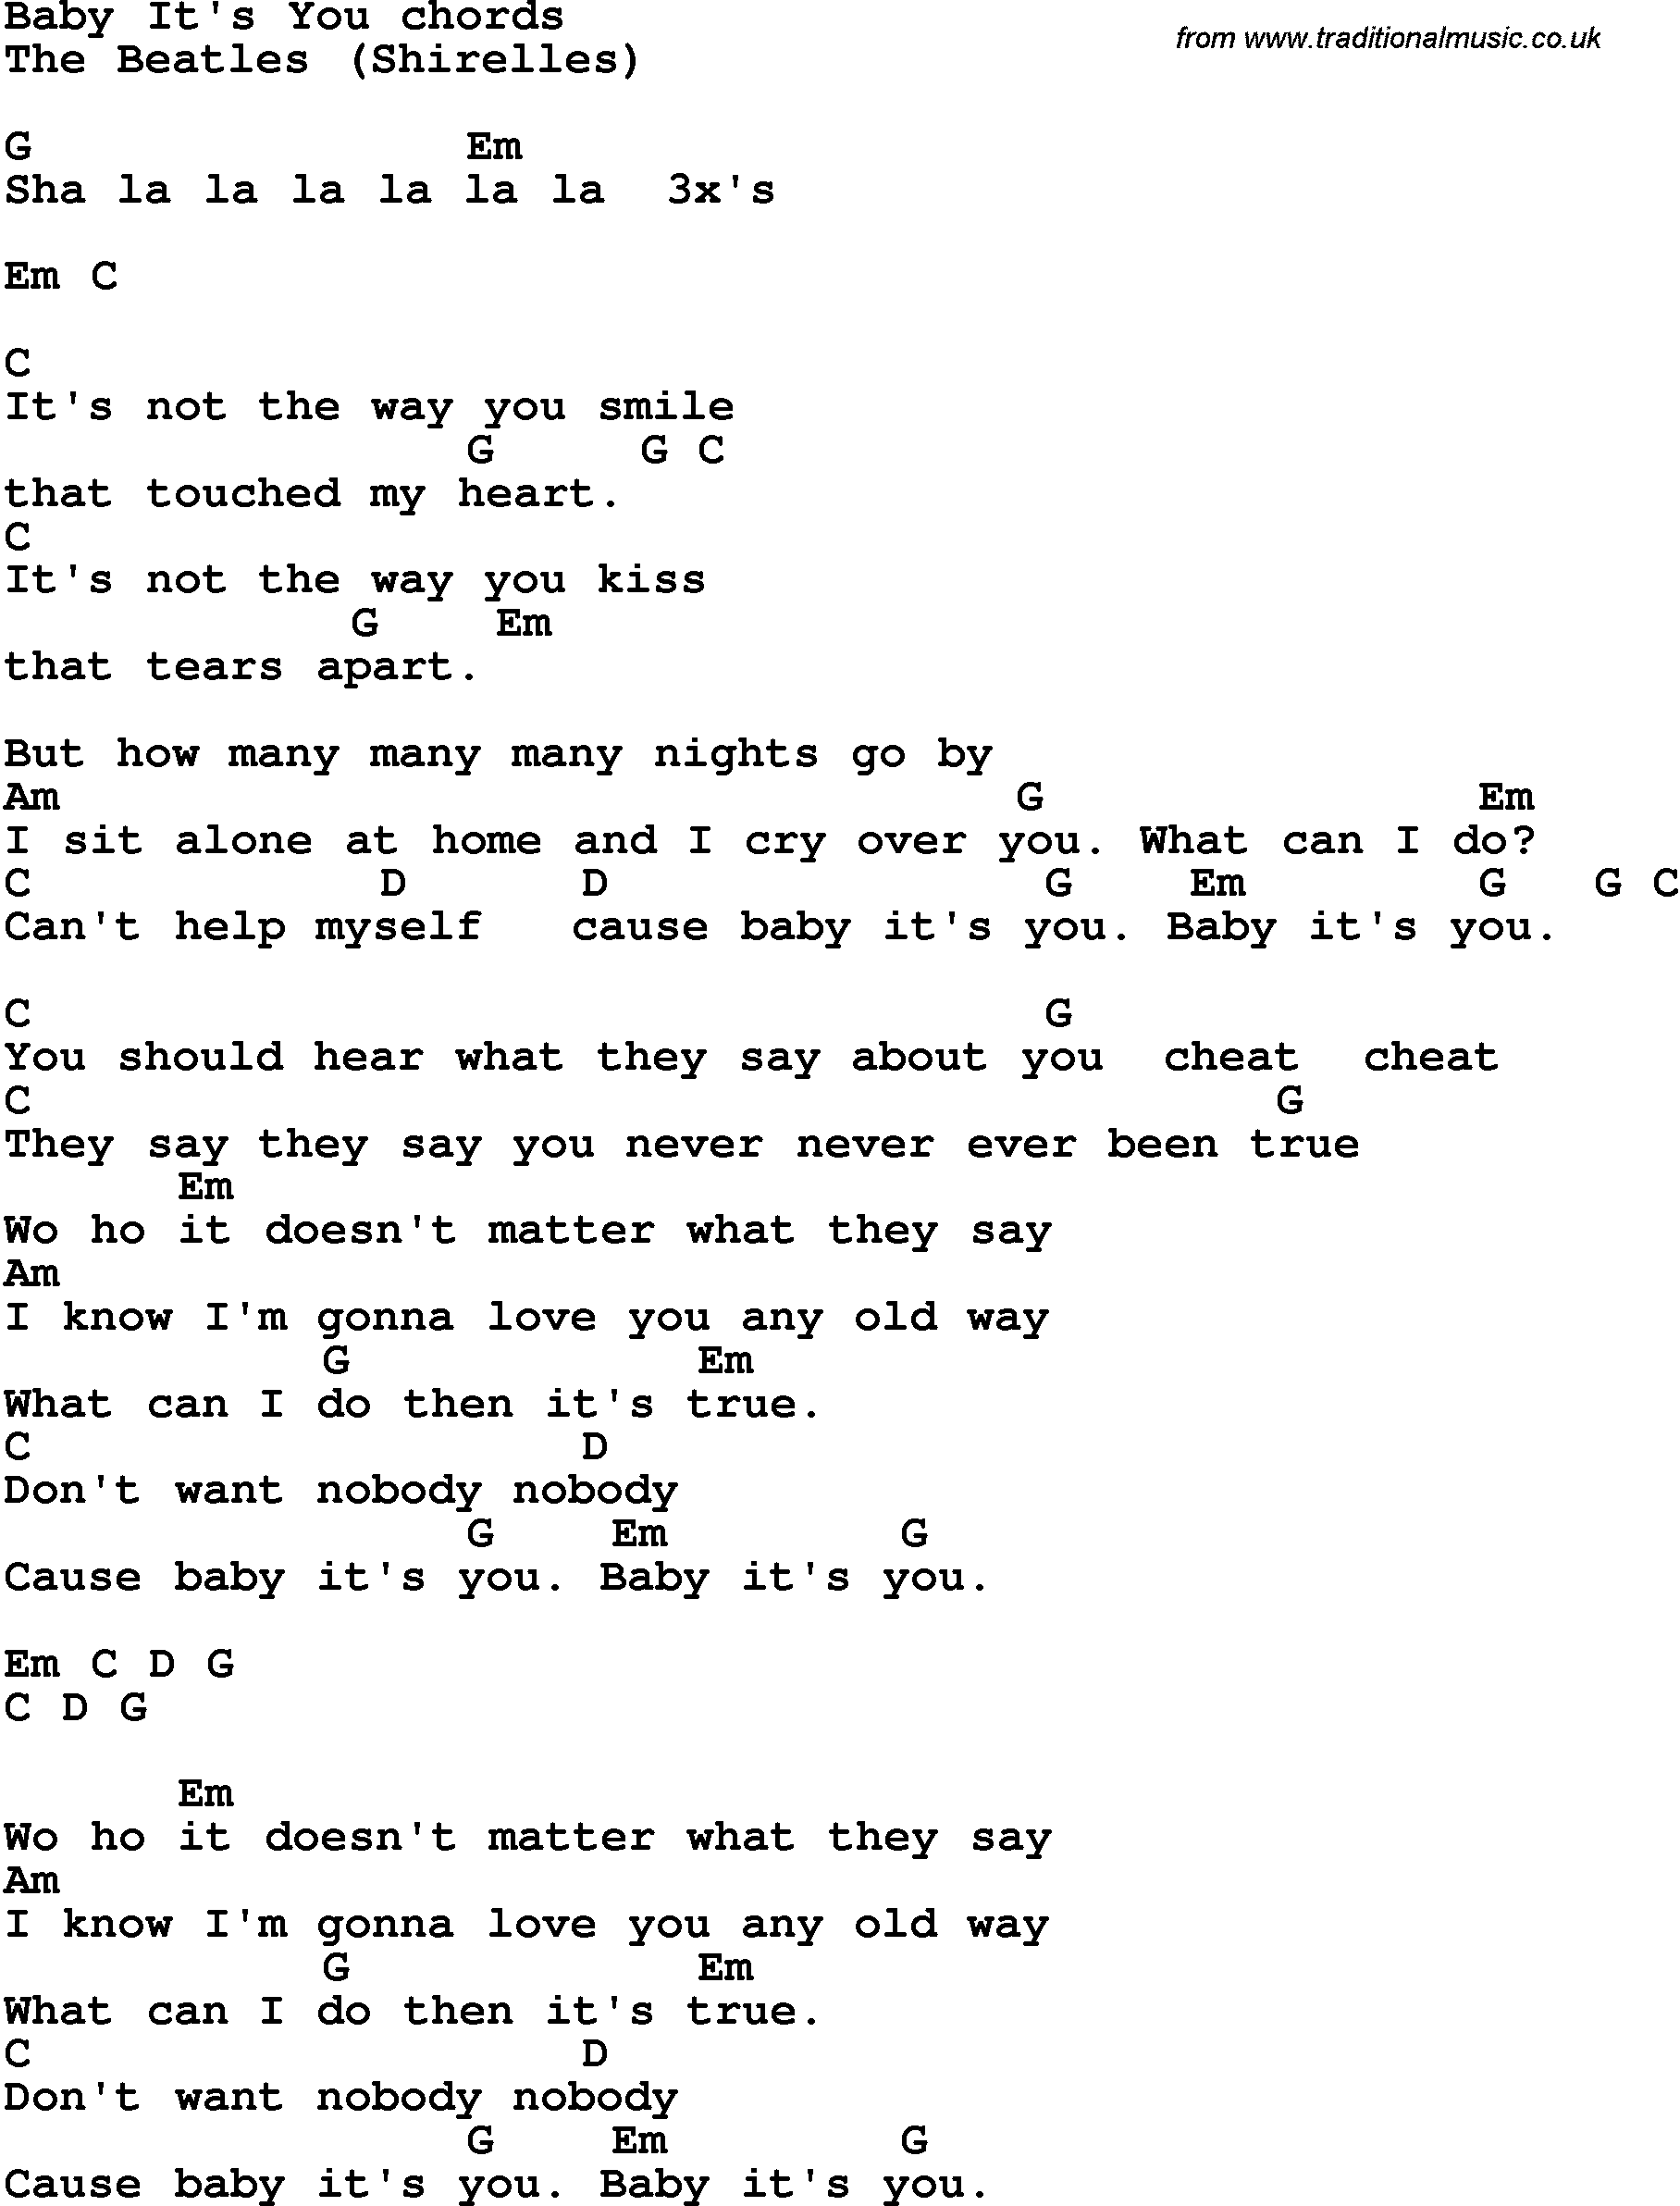 Song lyrics with guitar chords for baby its you the beatles song lyrics with guitar chords for baby its you the beatles hexwebz Images